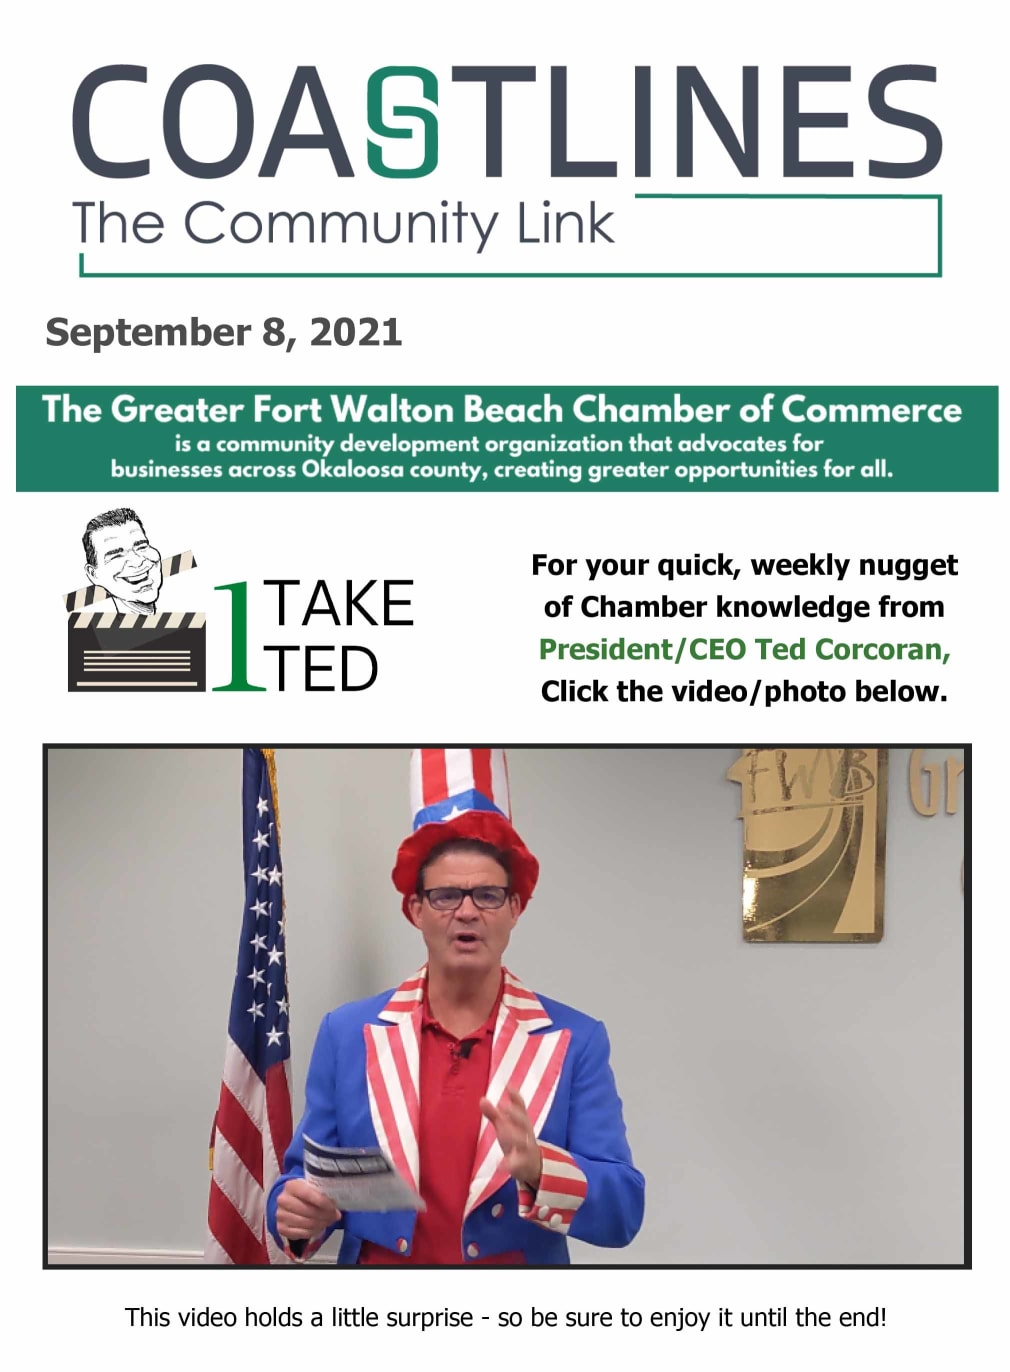 Image of Coastlines email for September 8, 2021 for the Greater Fort Walton Beach Chamber